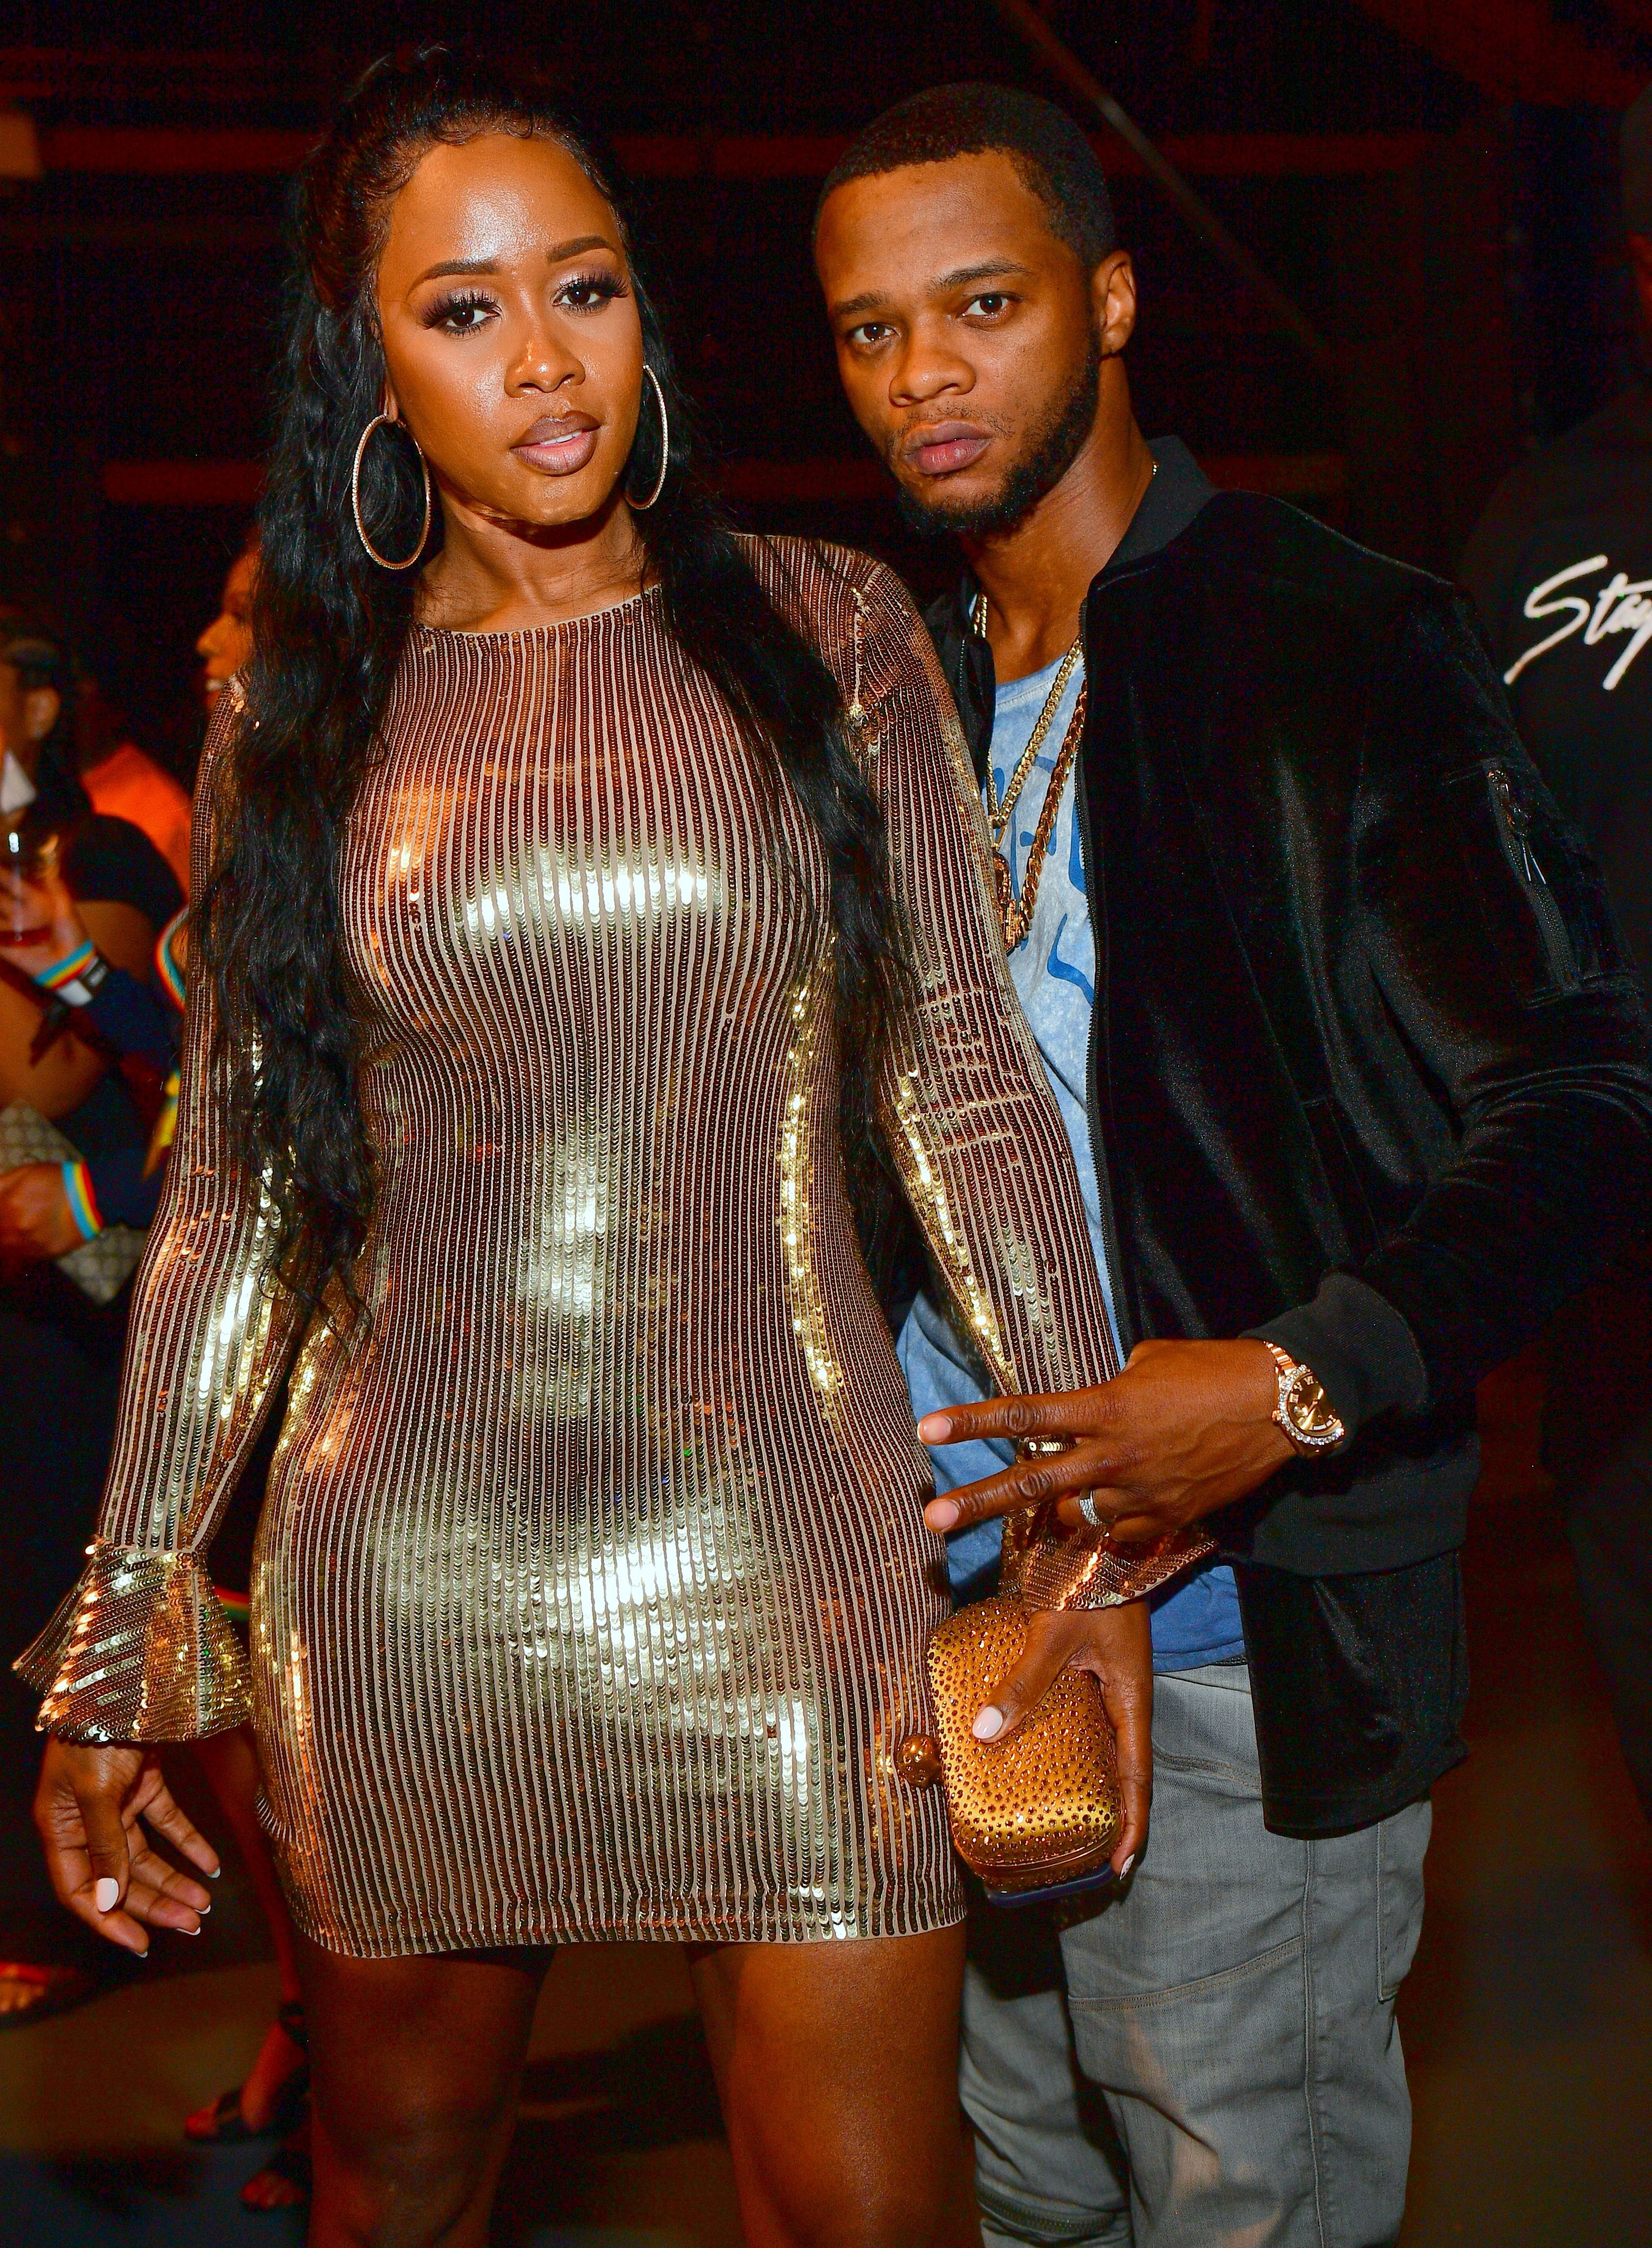 Remy Ma and Papoose at Teyana Taylor's Album Release Party at Universal Studios Hollywood on June 21, 2018 | Photo: Getty Images